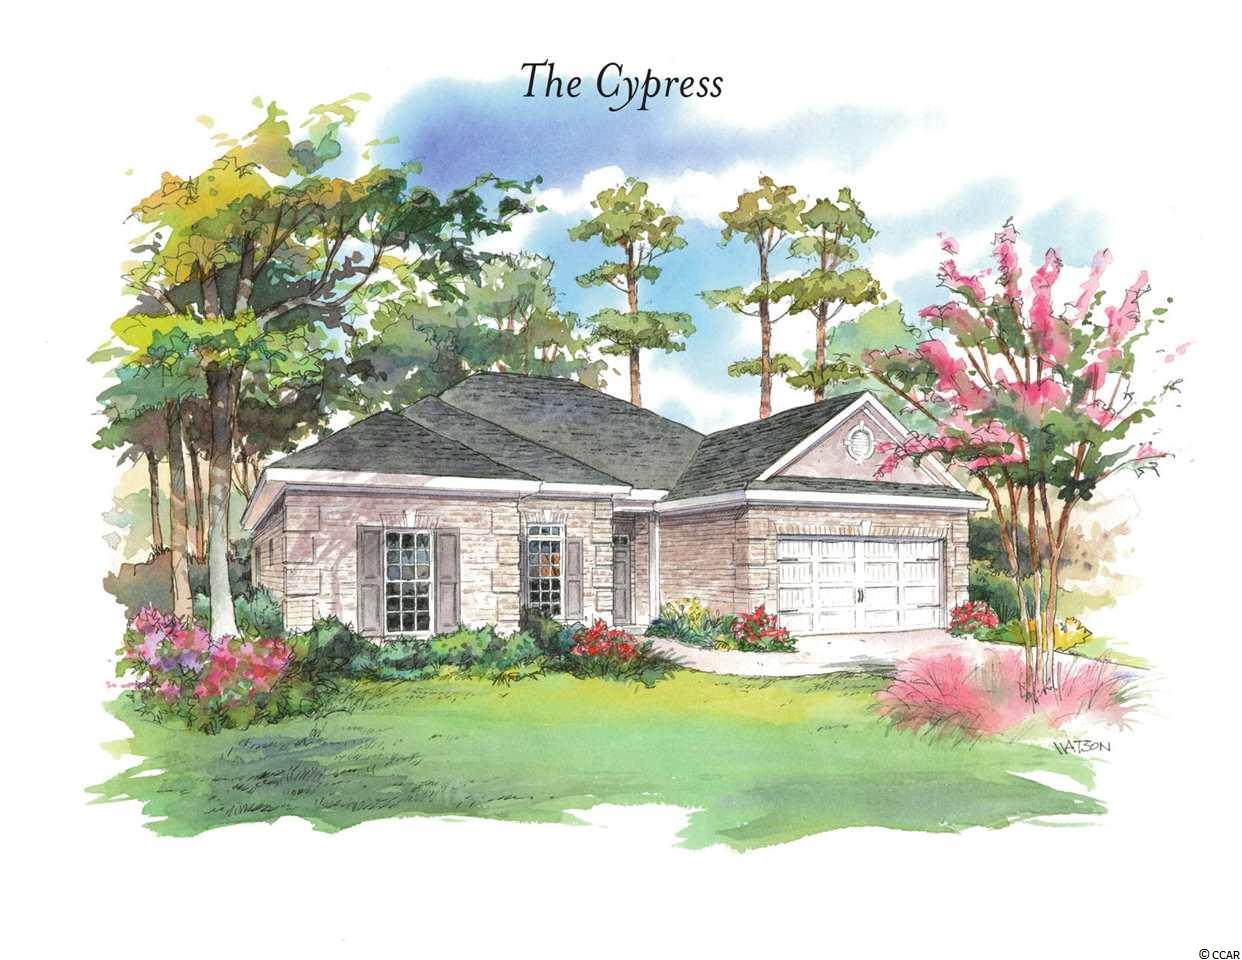 This home is To Be Built, so buy now to custom build your all brick home in one of the finest neighborhoods in the grand strand. The Cypress plan here has an added Sunroom option and has been our most popular plan. Cipriana Park at Grande Dunes offers single family homes nestled in the Ocean Village of the premier community, Grande Dunes. This boutique community has only 4 vacant Lots remaining and is conveniently located to all Myrtle Beach has to offer; beautiful beaches, a treasure trove of restaurants, award winning golf, entertainment venues, designer outlets and shopping, state of the heart medical facilities and much more. All of the conveniences are within walking distance. Grande Dunes provides the finest amenities in the coastal Carolinas, with its' private Ocean Club, Marina, Tennis Club and Championship Golf Courses. One of the area's finest and most desired builders, Traditional Homebuilders, constructs your home to be well above necessary codes and standards by using the highest quality materials, finest and consistent contractors, constant supervision and attention to every detail. Come live the Grande life. Please Note: Photos of the home are not this home but are from a past Cypress Model Home.